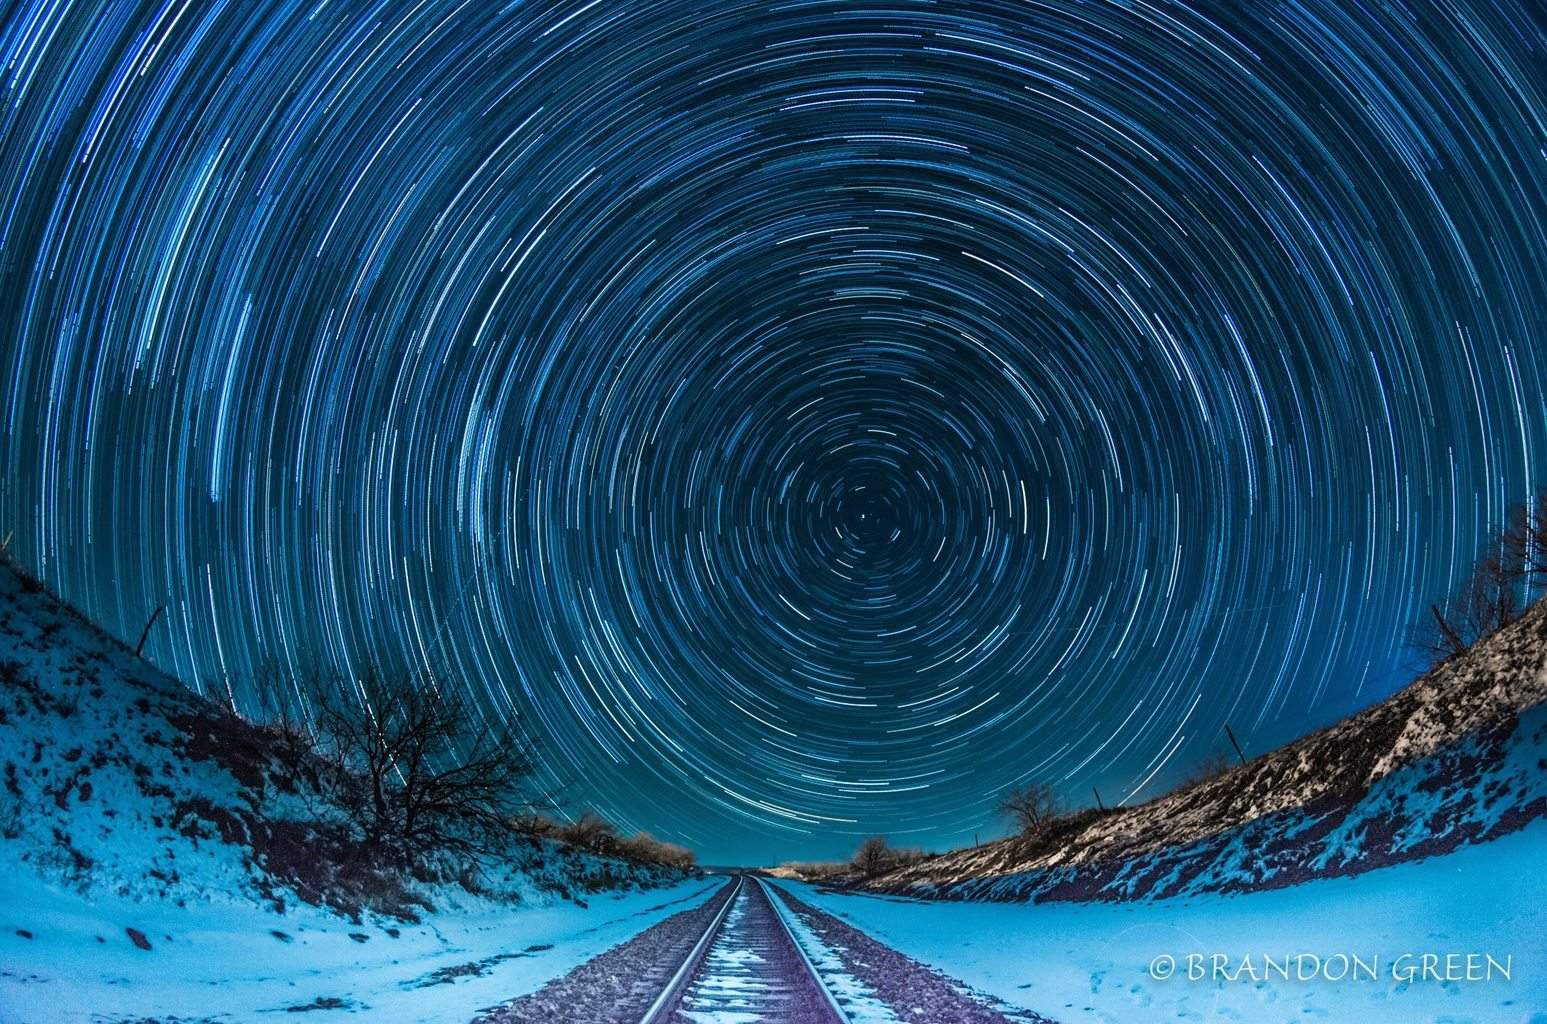 01-23-15 Star trails in Amarillo, TX a couple of days after heavy snow.